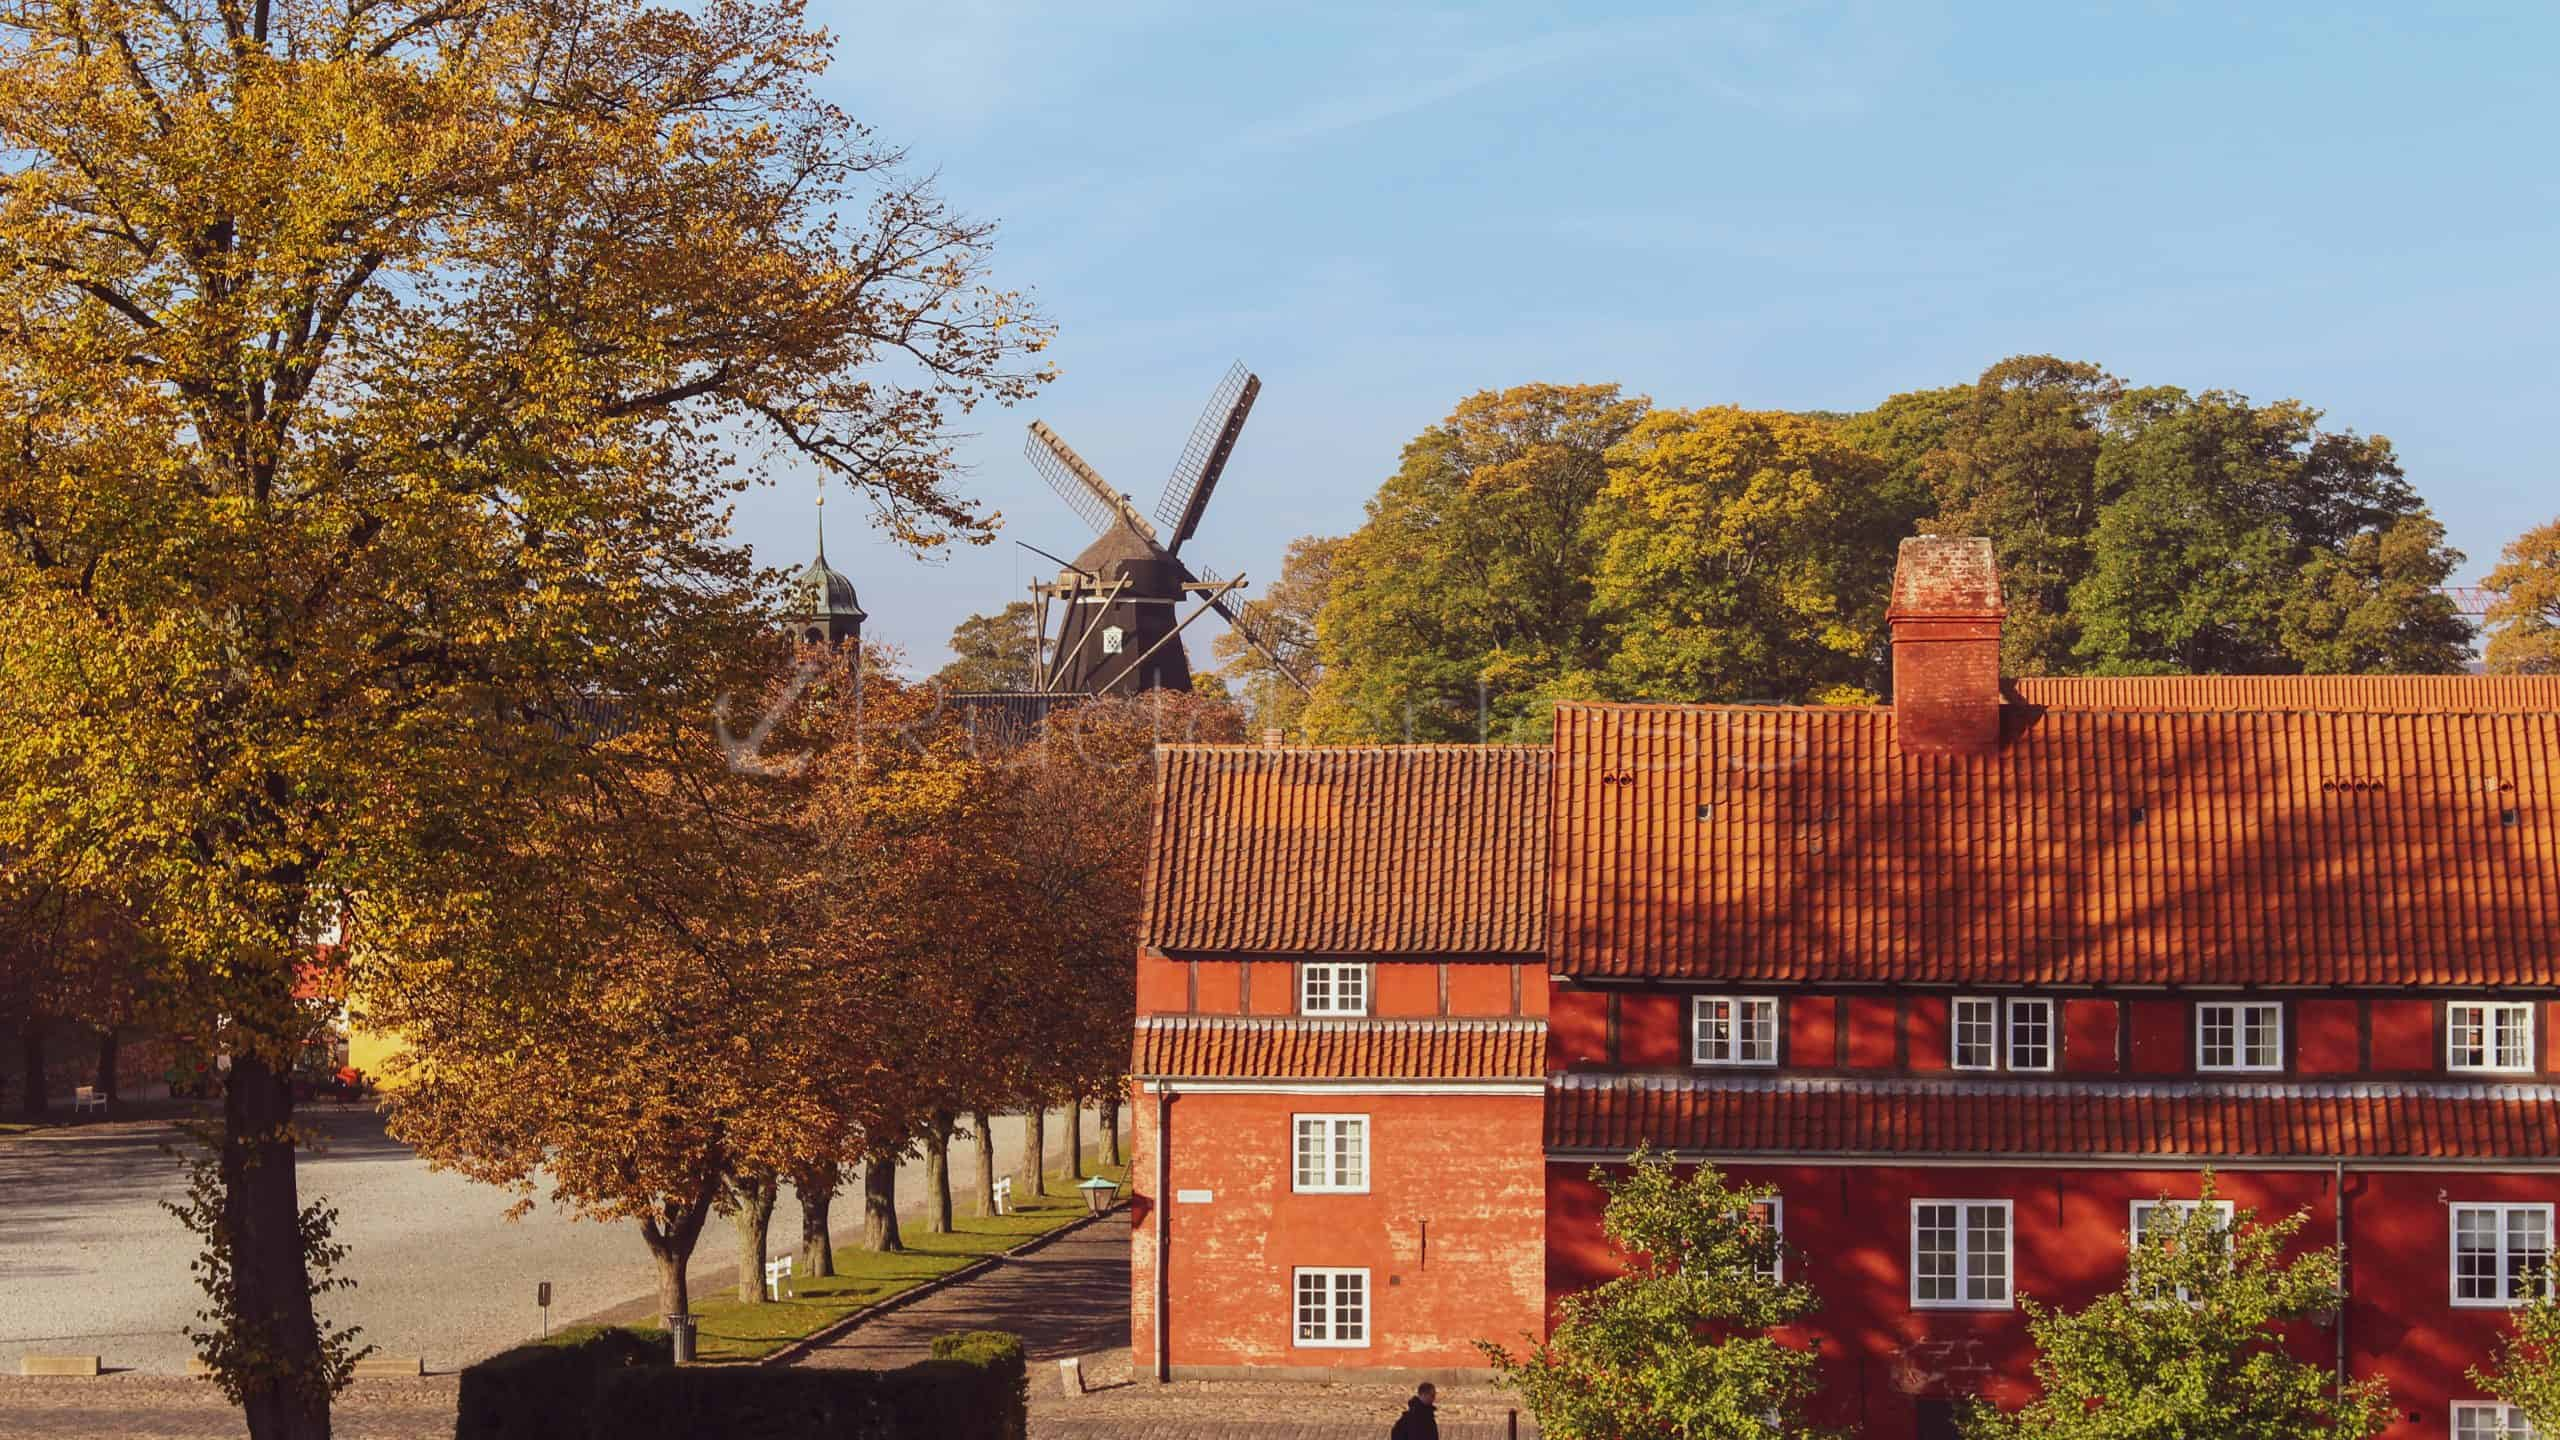 things to see in copenhagen - Kastellet